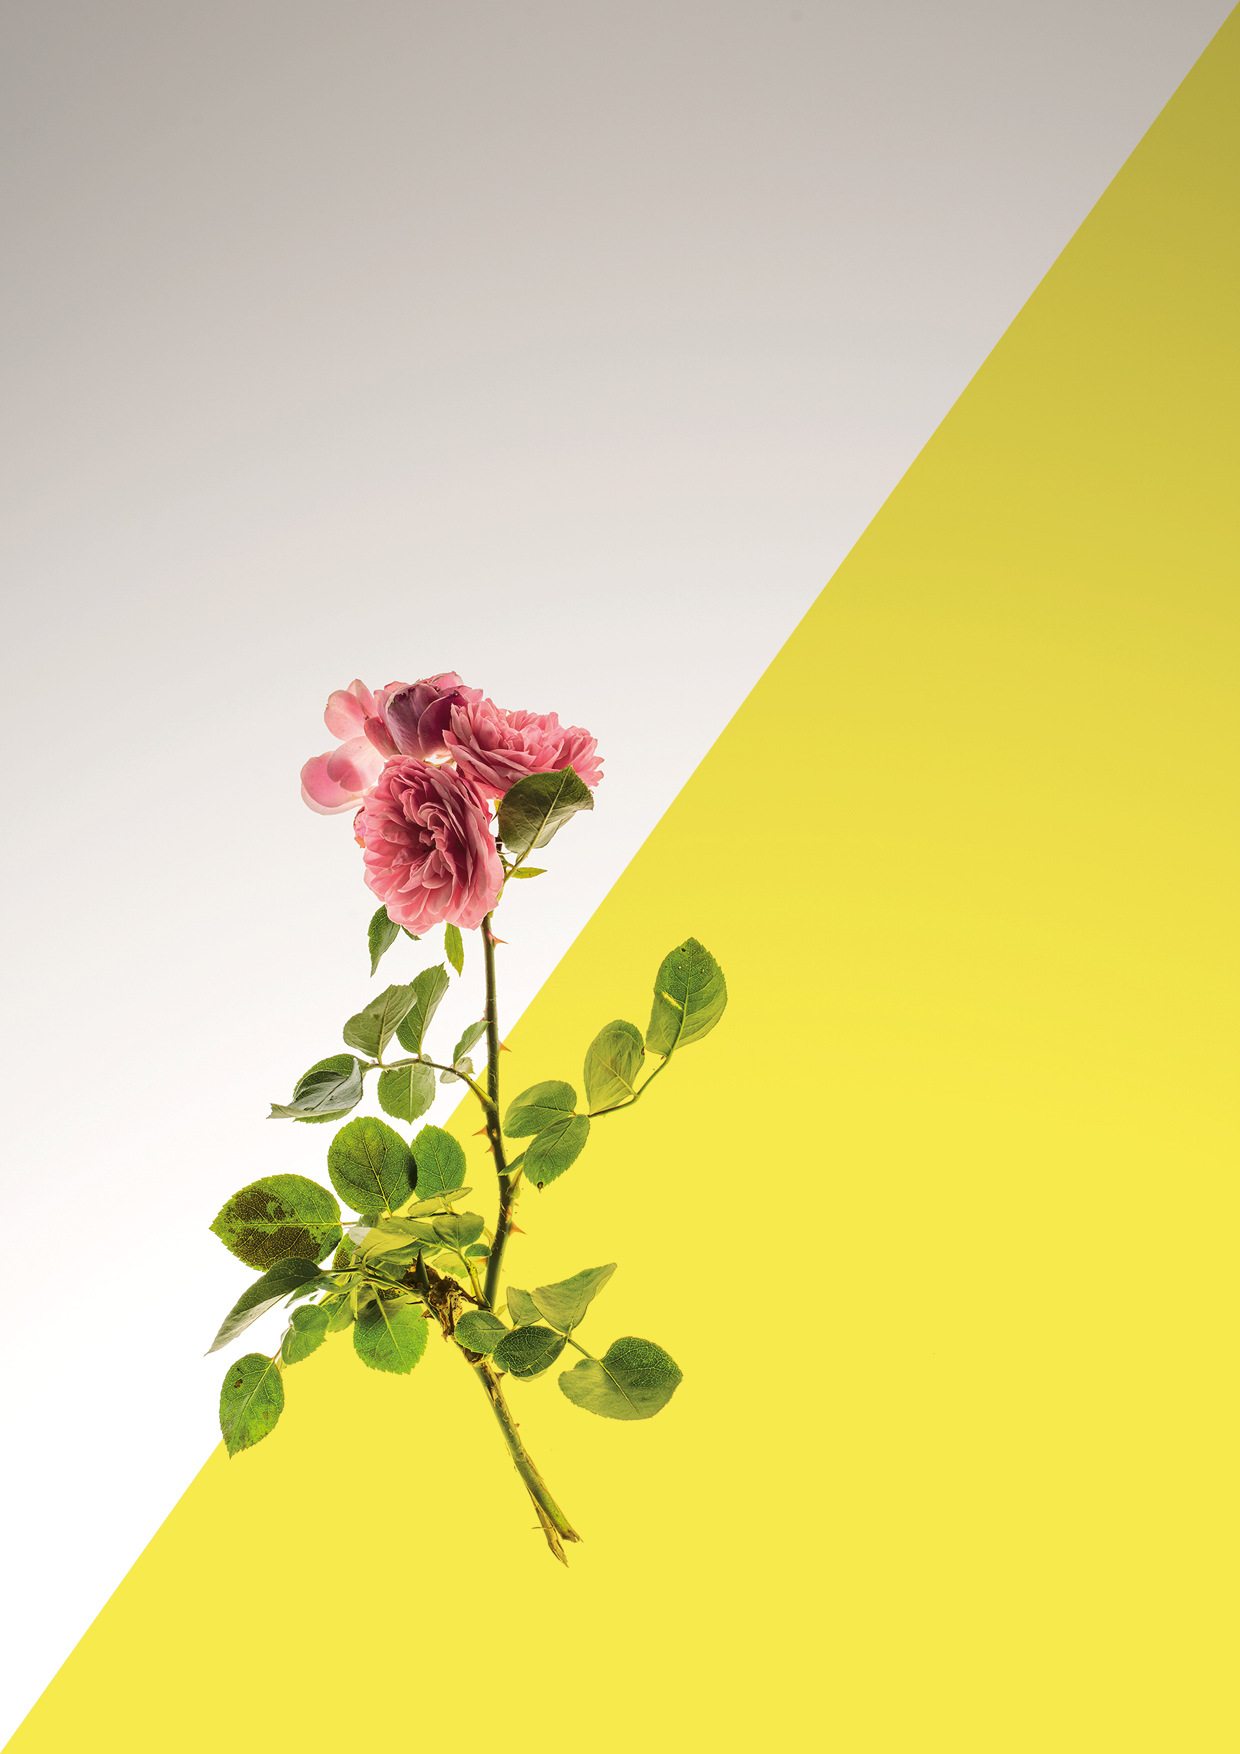 Botanicals | Art Direction | By James-Lee Duffy